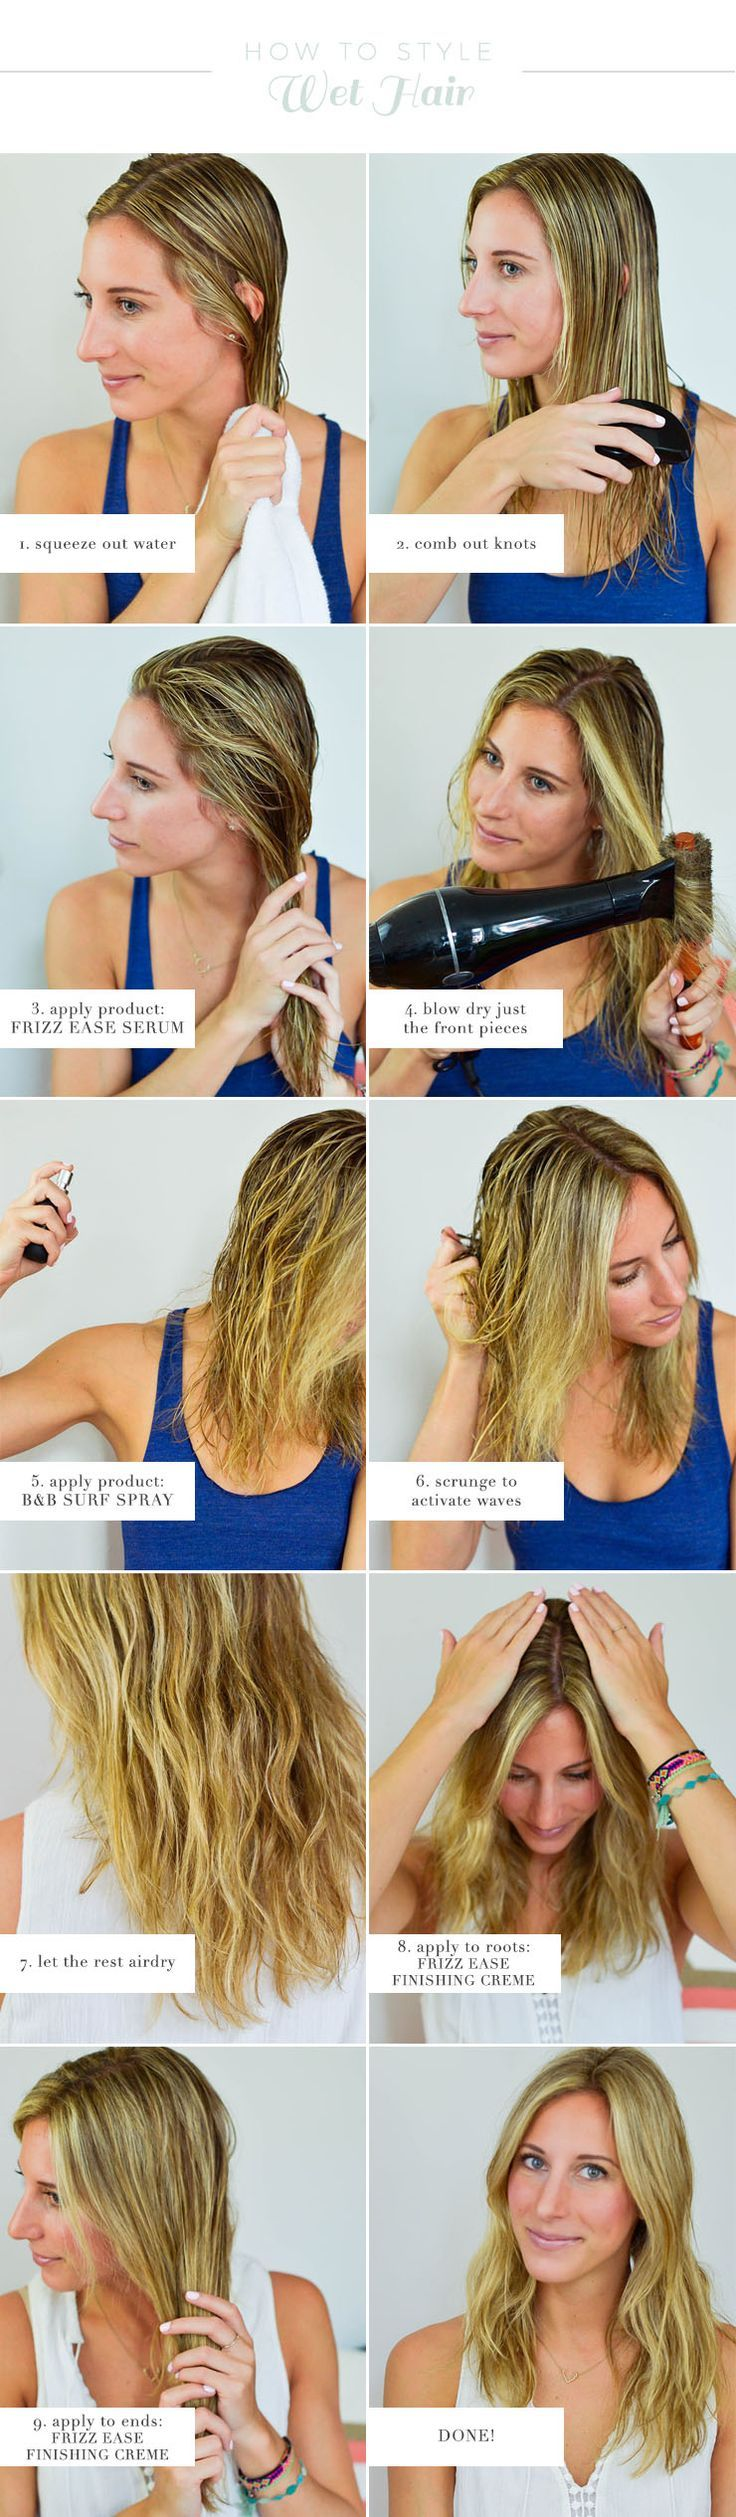 Hacking Your Morning Routine How To Style Wet Hair